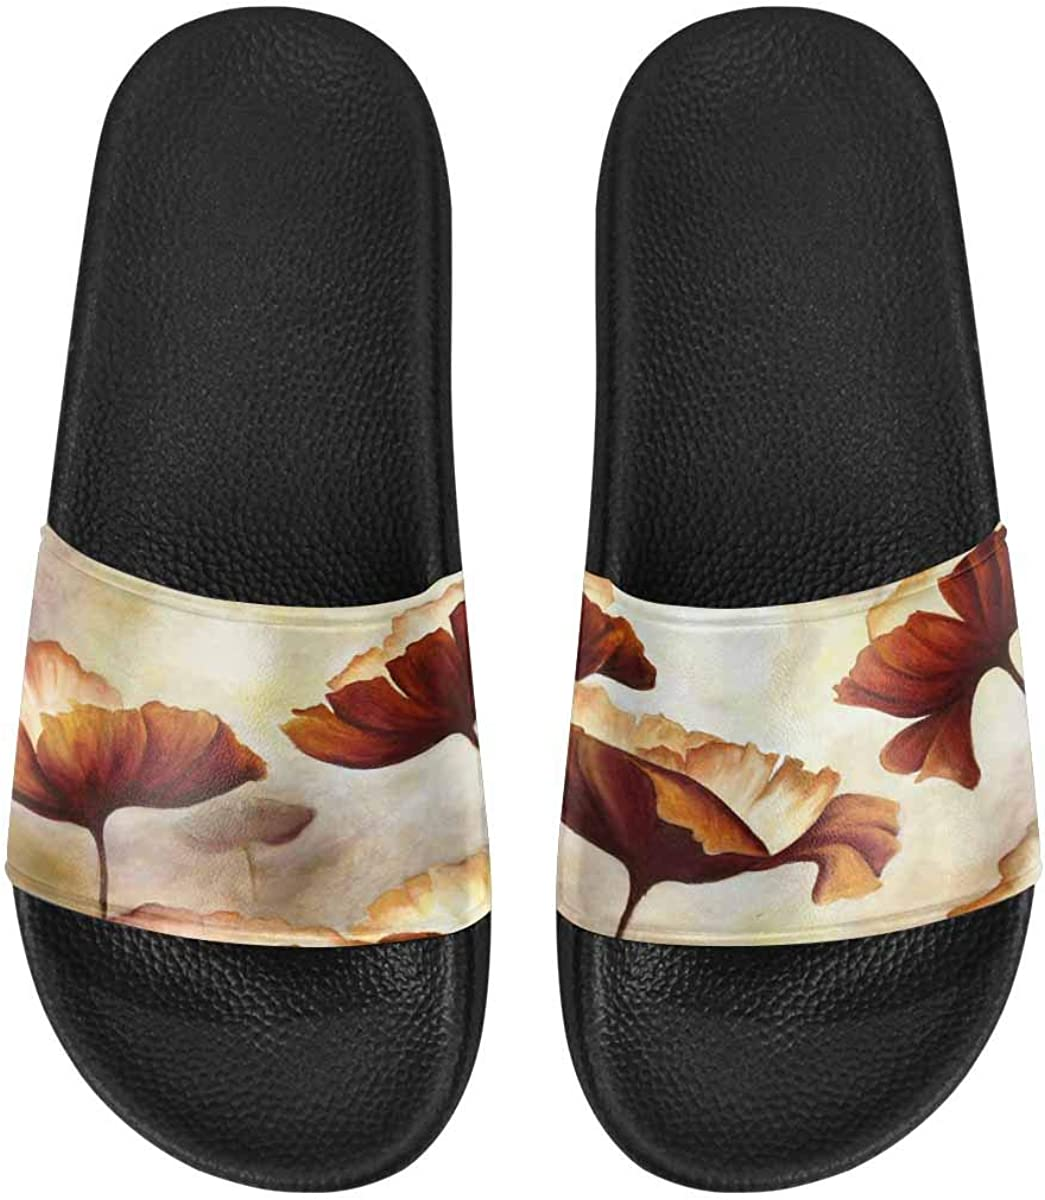 InterestPrint Women's Slide Sandals with PVC Straps and Sole Owls Under The Rain